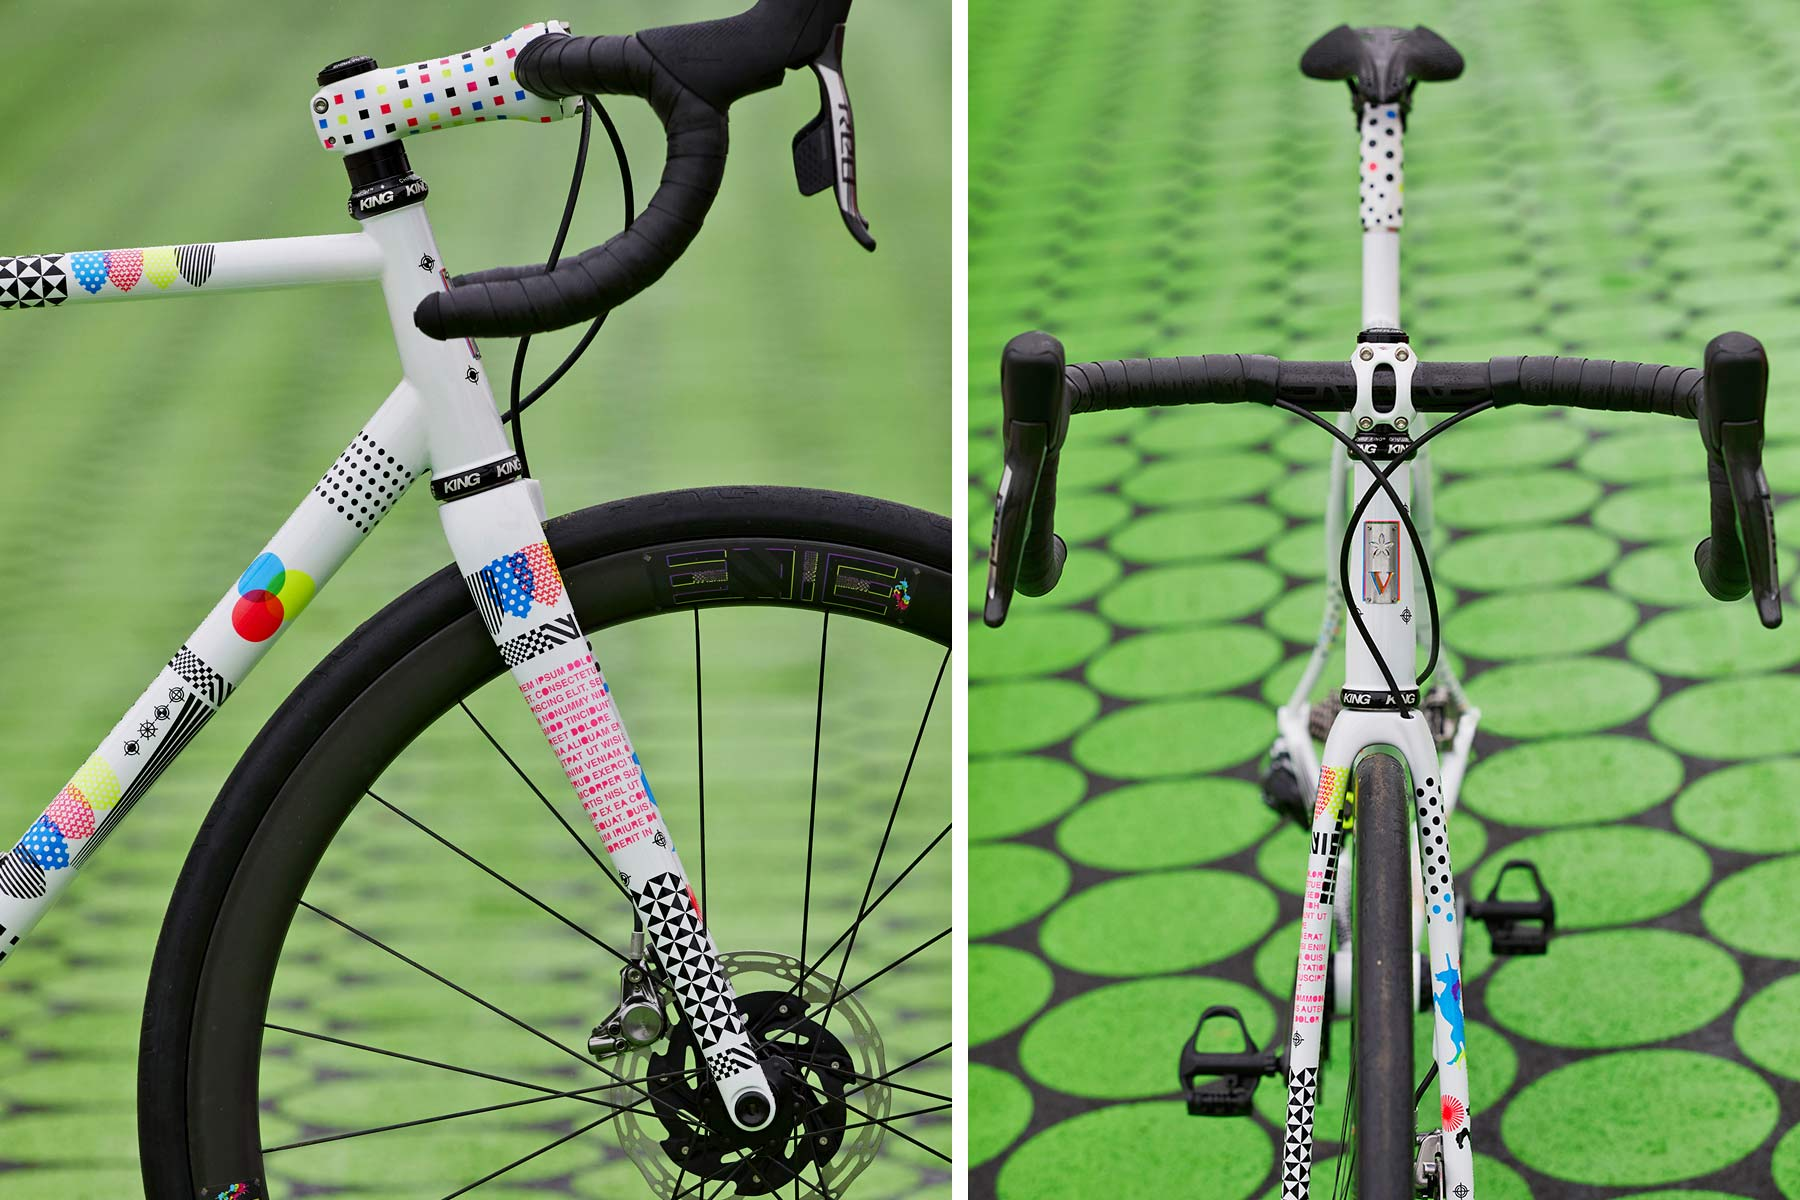 2021-2022 Speedvagen Surprise Me series, full-custom Vanilla workshop road bike with surprise paintjob inspired by printers proofs, The Painters Proof CMYK edition front end